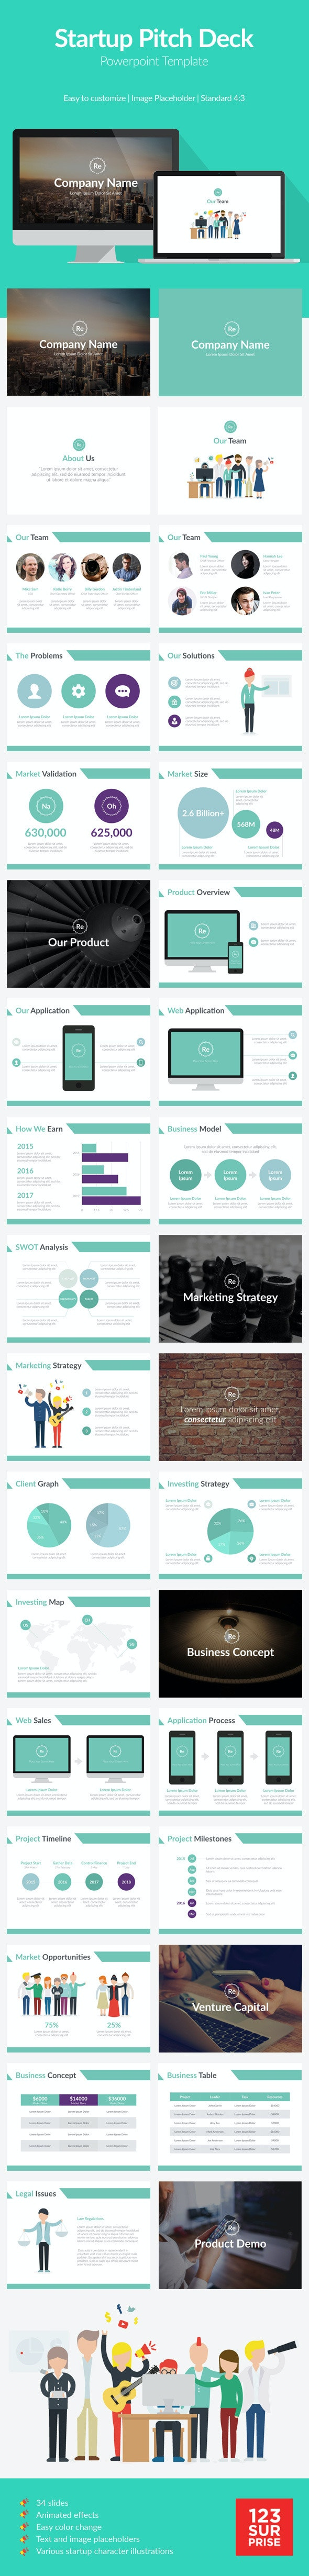 Startup Pitch Deck Template - Pitch Deck PowerPoint Templates